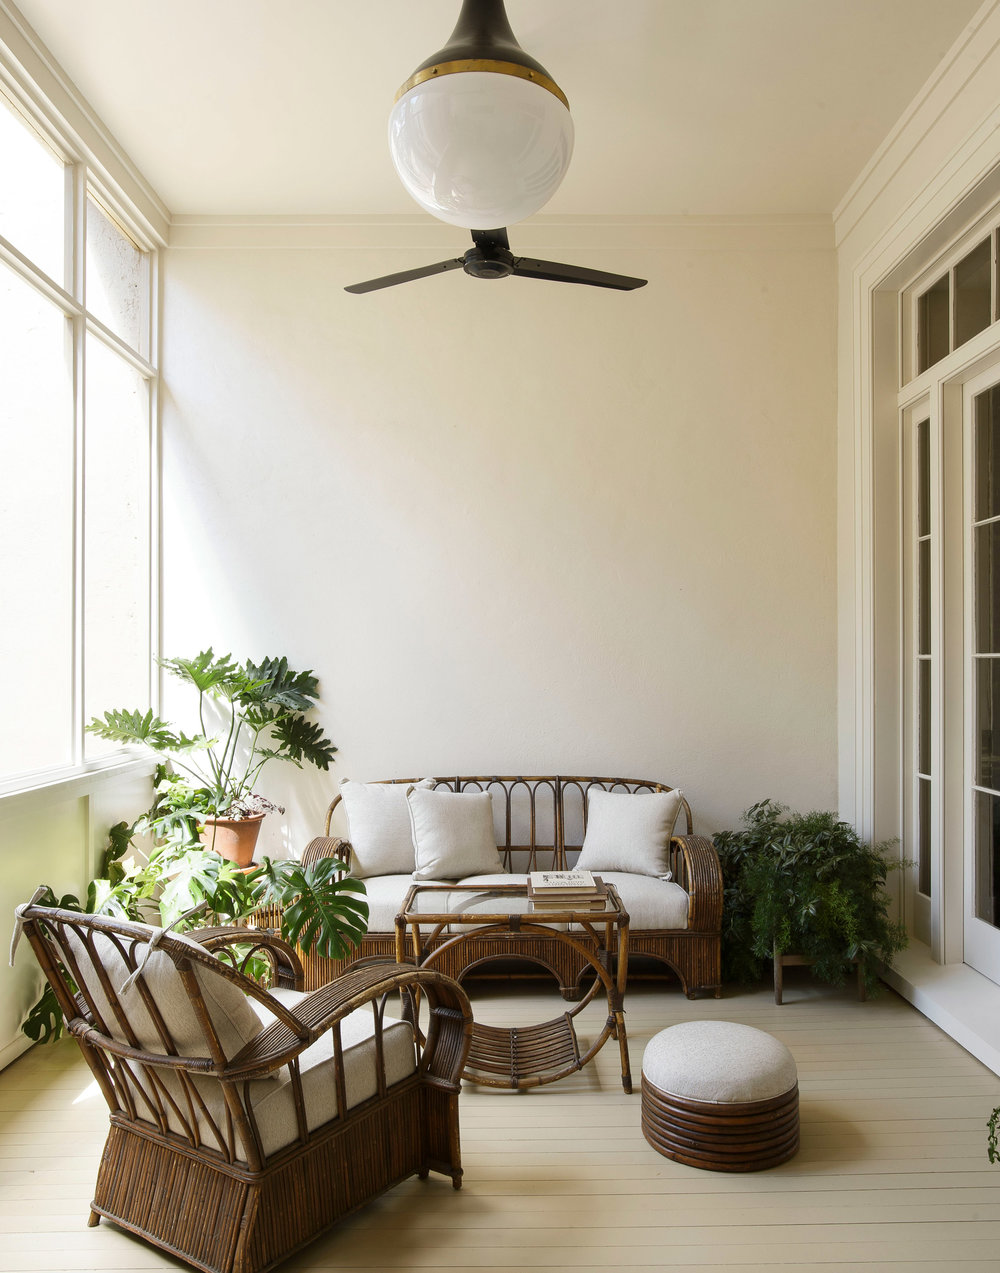 workstead-house-charleston-south-carolina-renovation-workstead_dezeen_2364_col_40.jpg